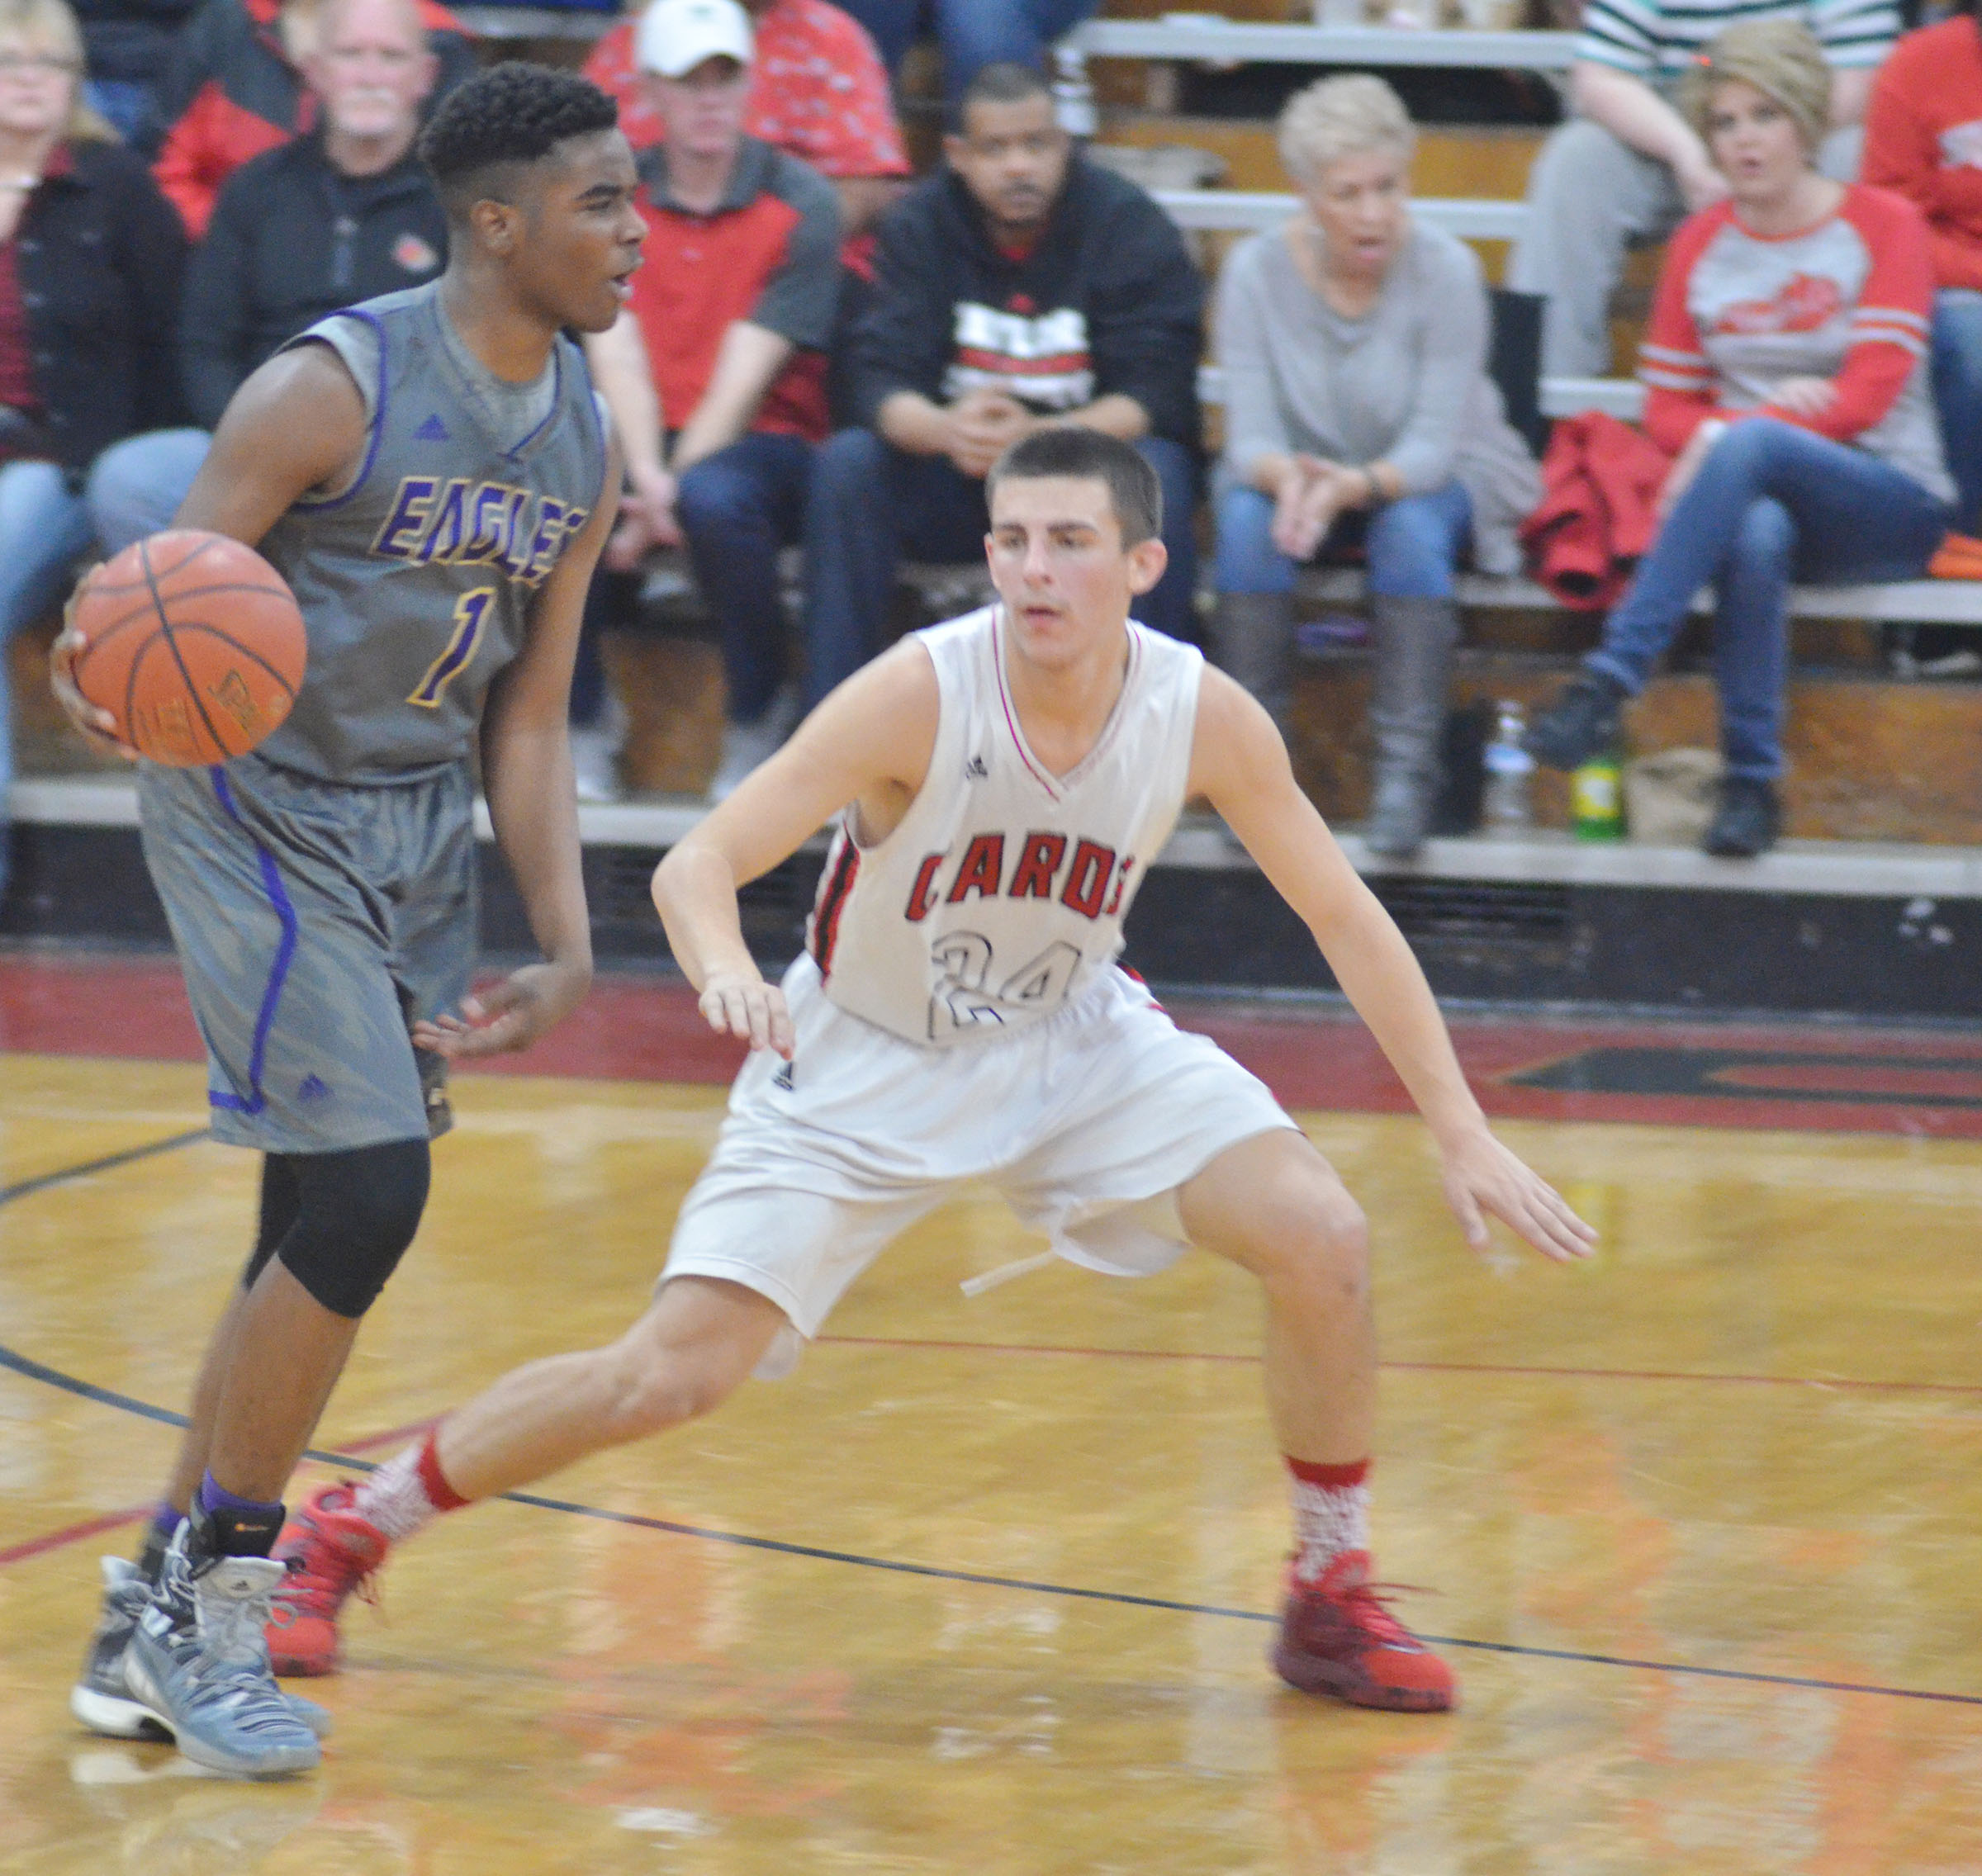 CHS junior Chanson Atkinson dribbles.